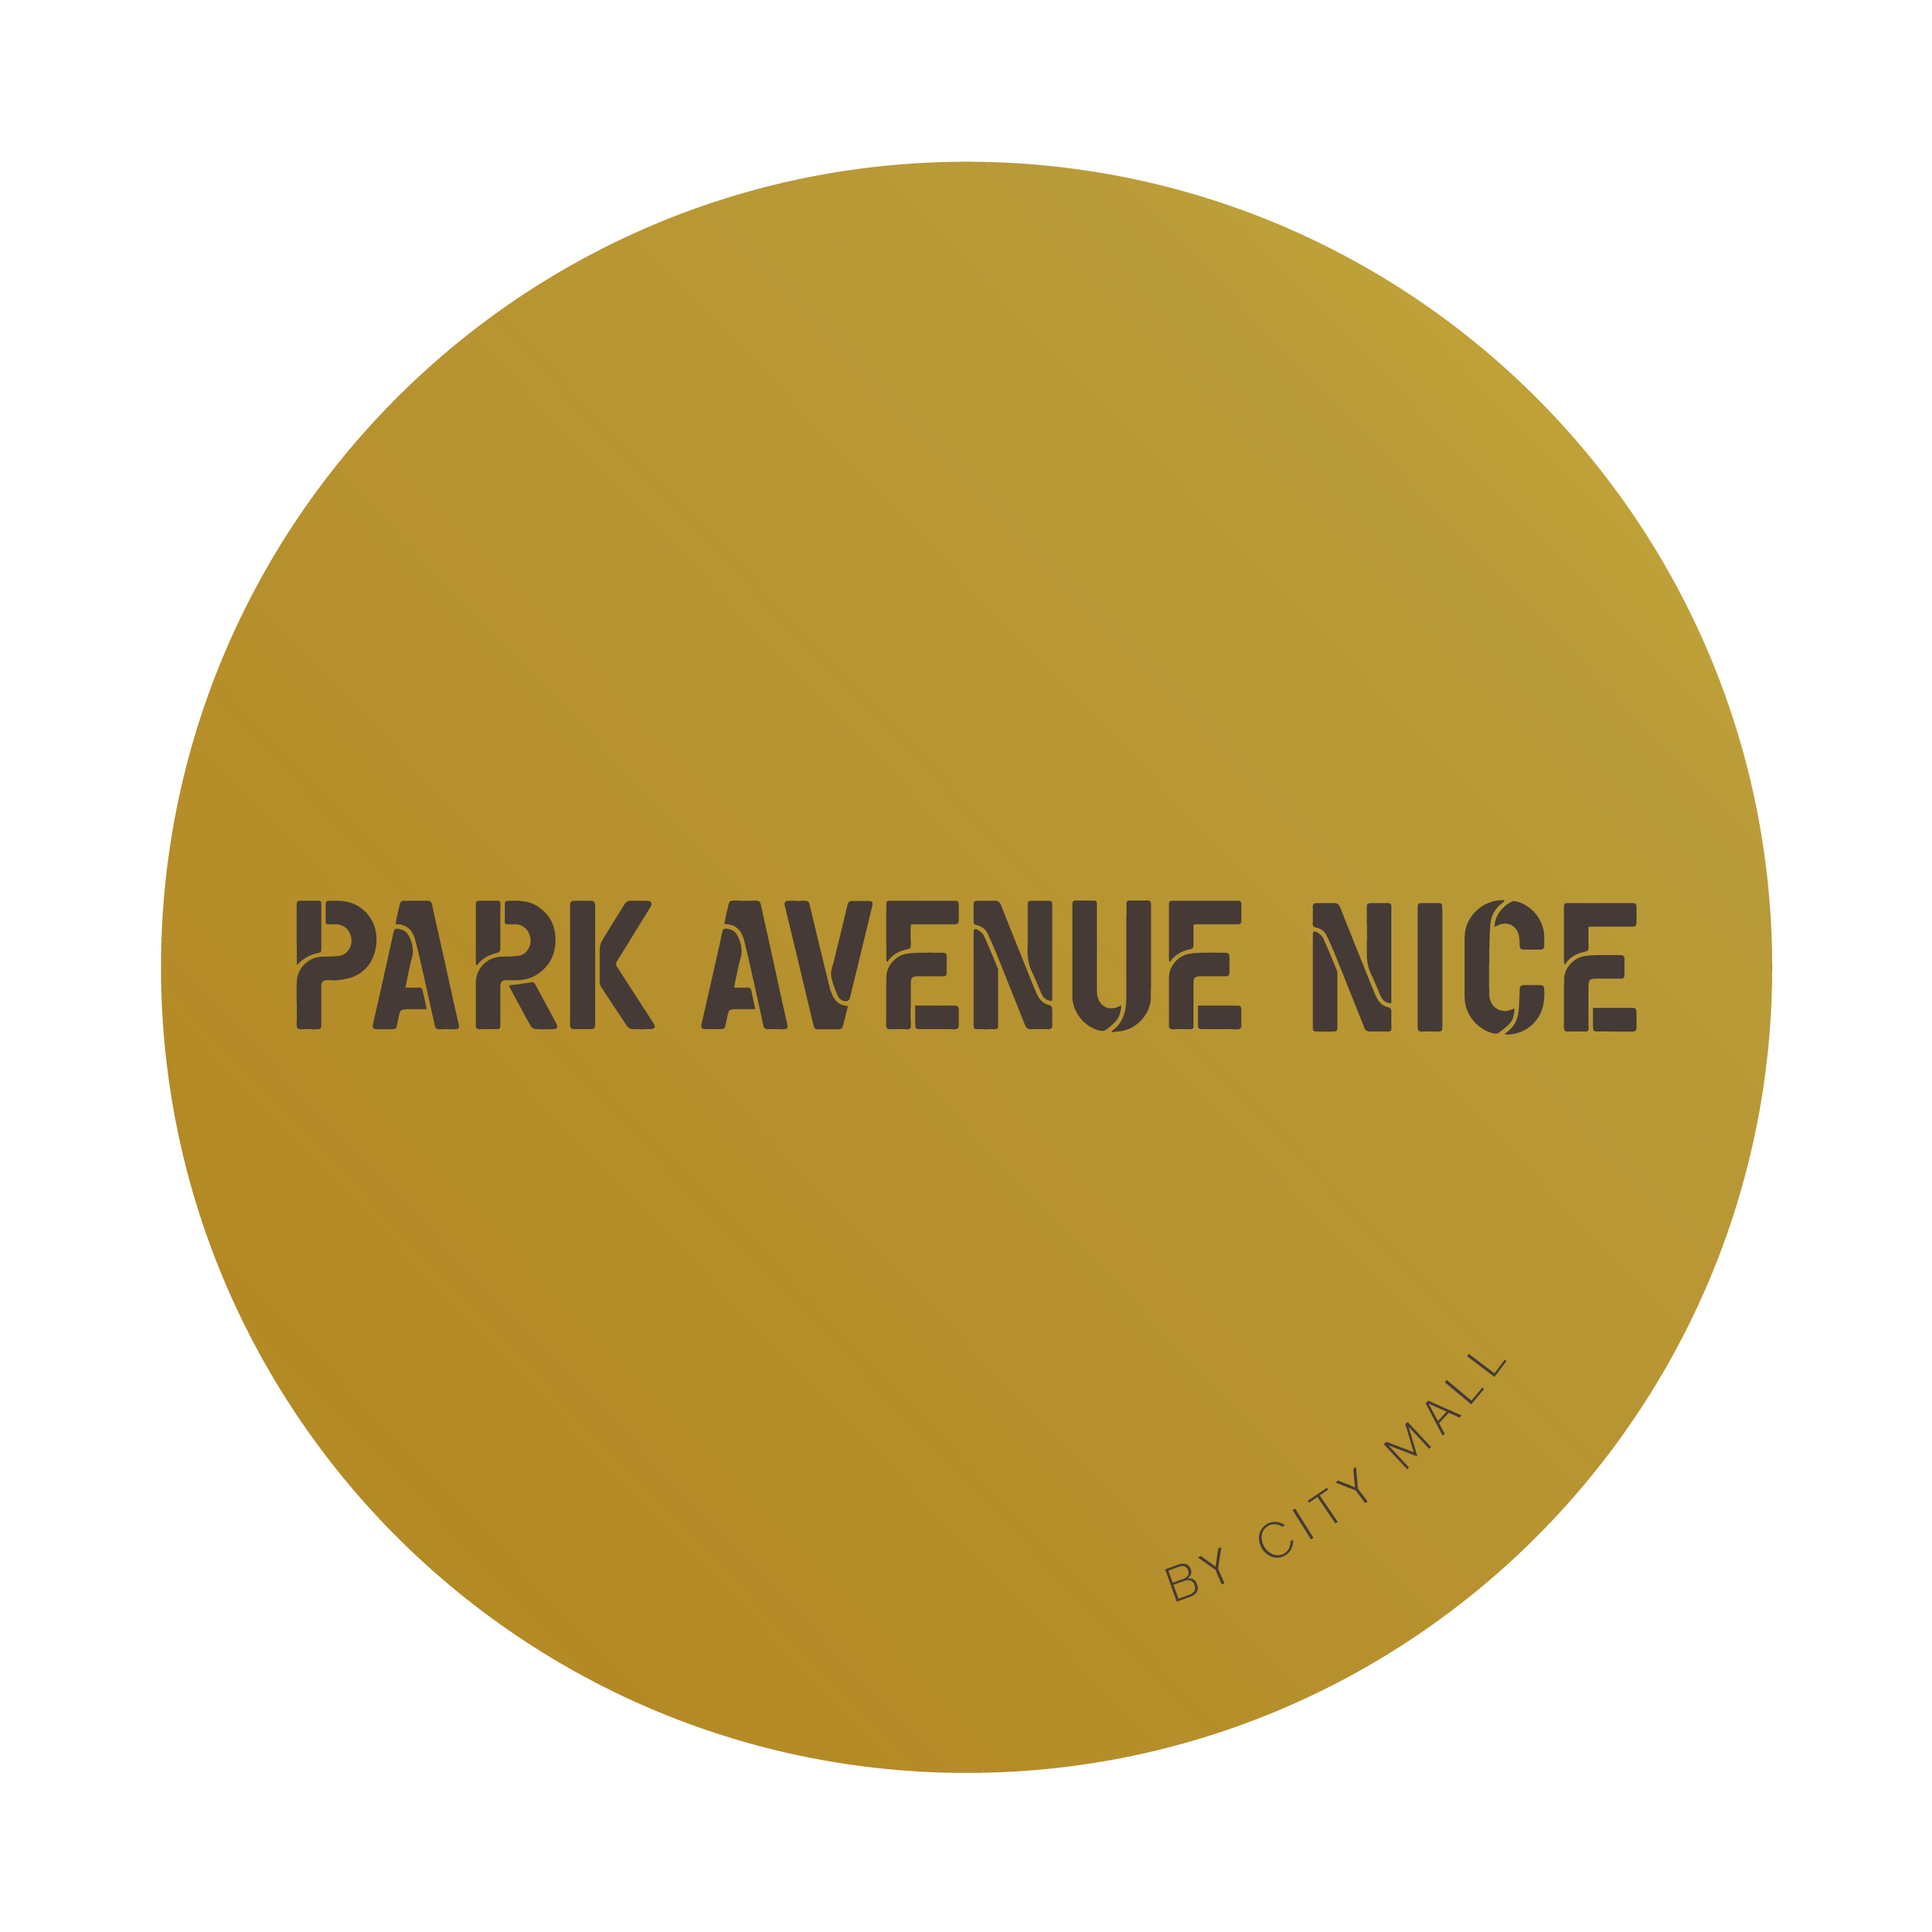 Park Avenue Nice by City Mall